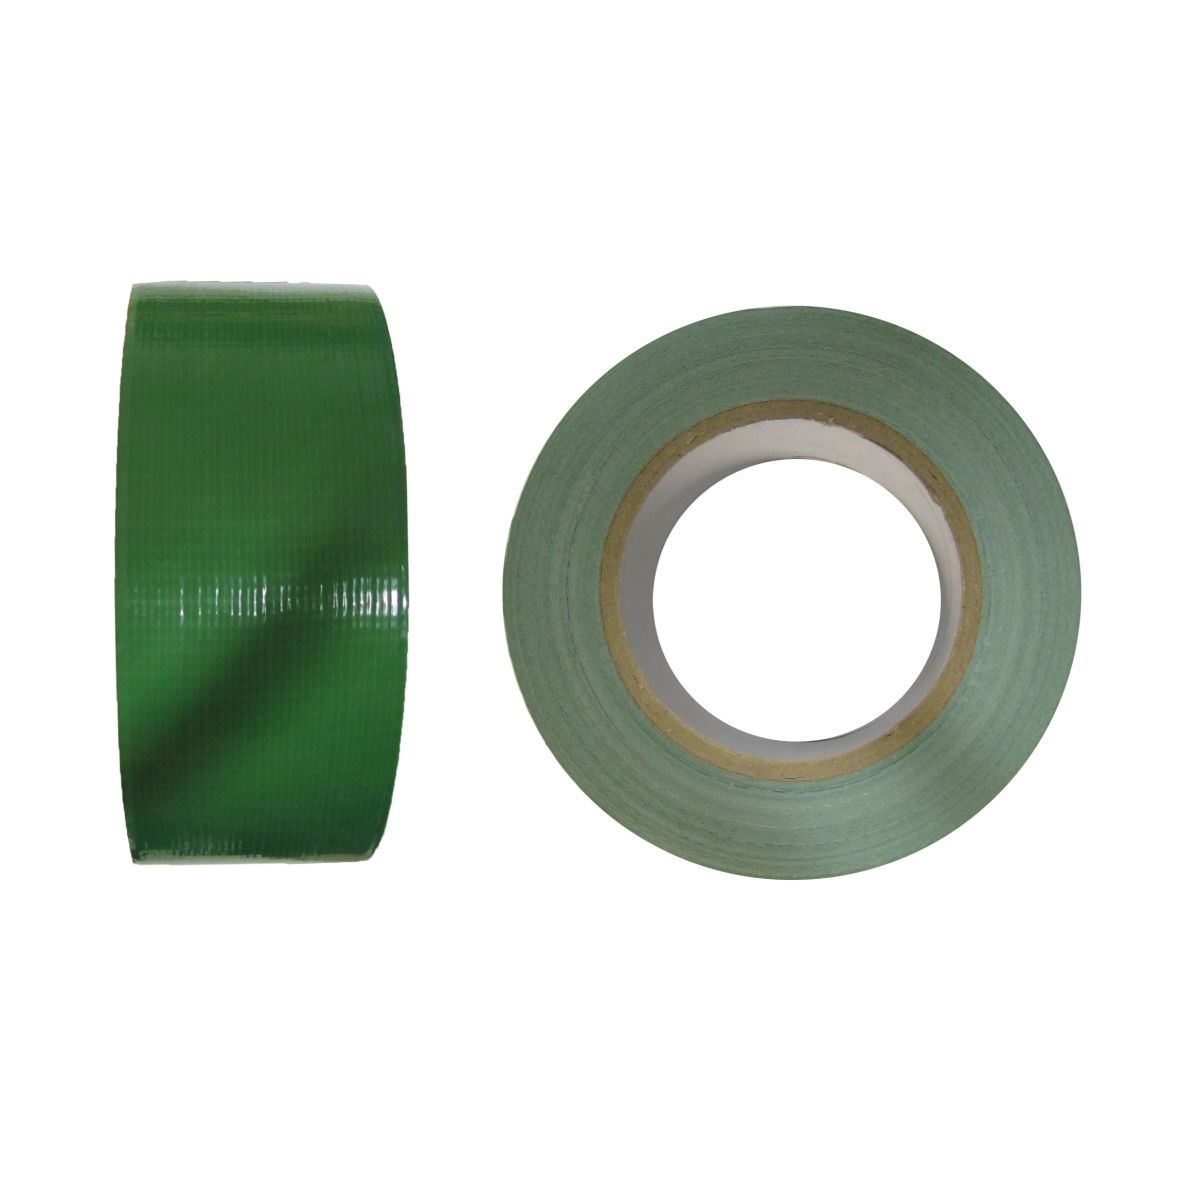 Aw Motorcycle Parts Duct Tape Green 50mm X 50 Metres